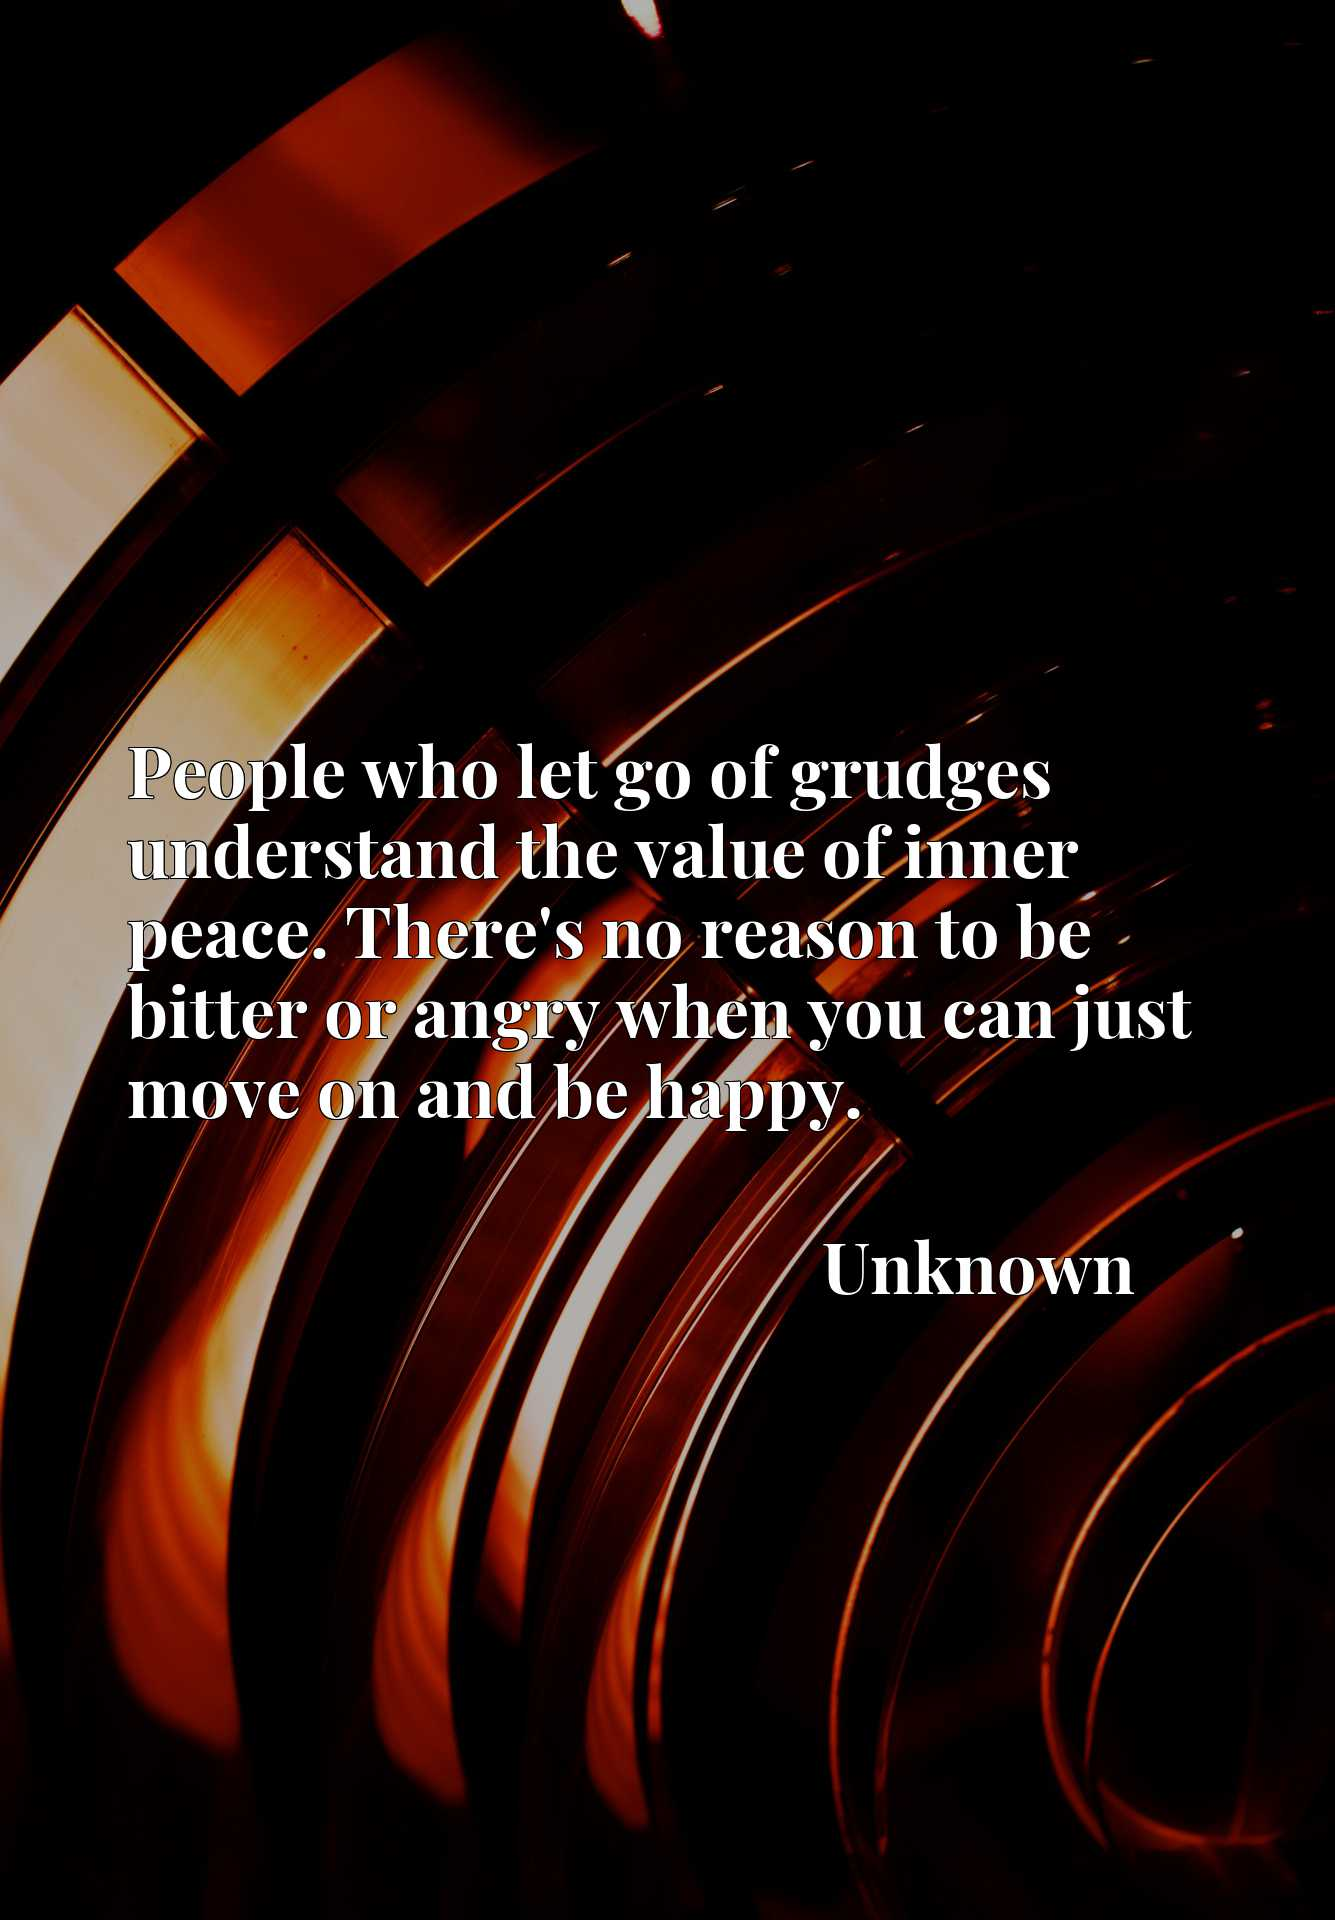 Quote Picture :People who let go of grudges understand the value of inner peace. There's no reason to be bitter or angry when you can just move on and be happy.